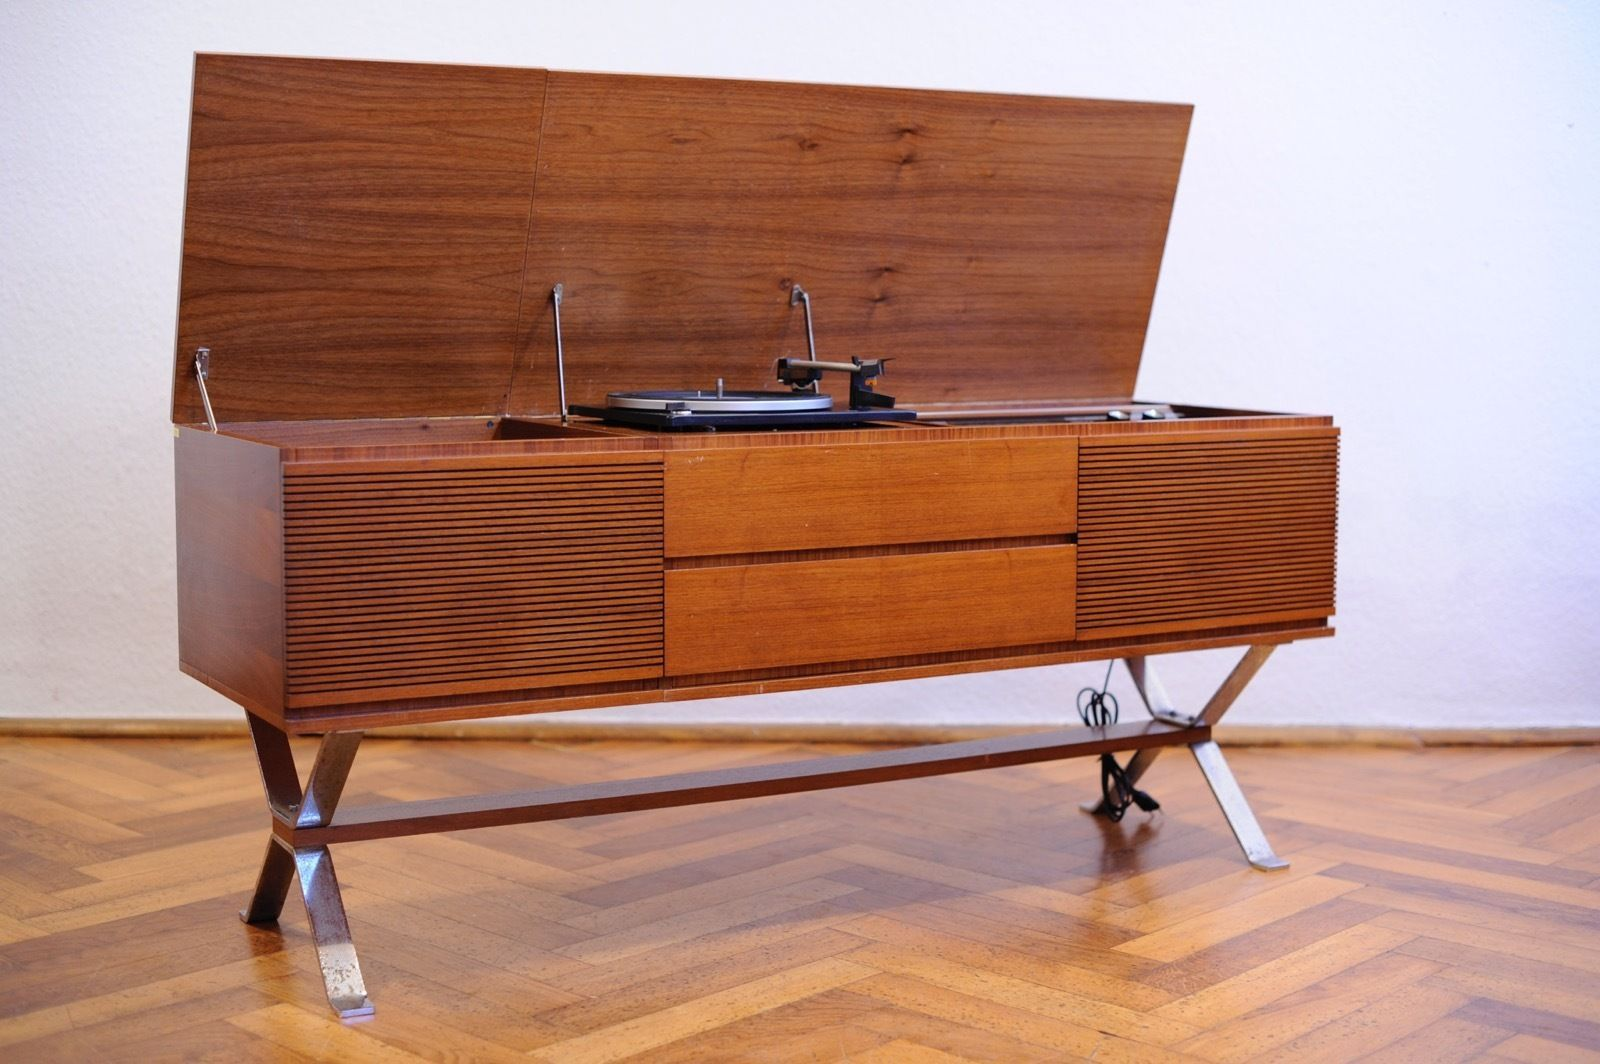 Serviced 60s Vintage Blaupunkt Pe 720 Turntable Record Player